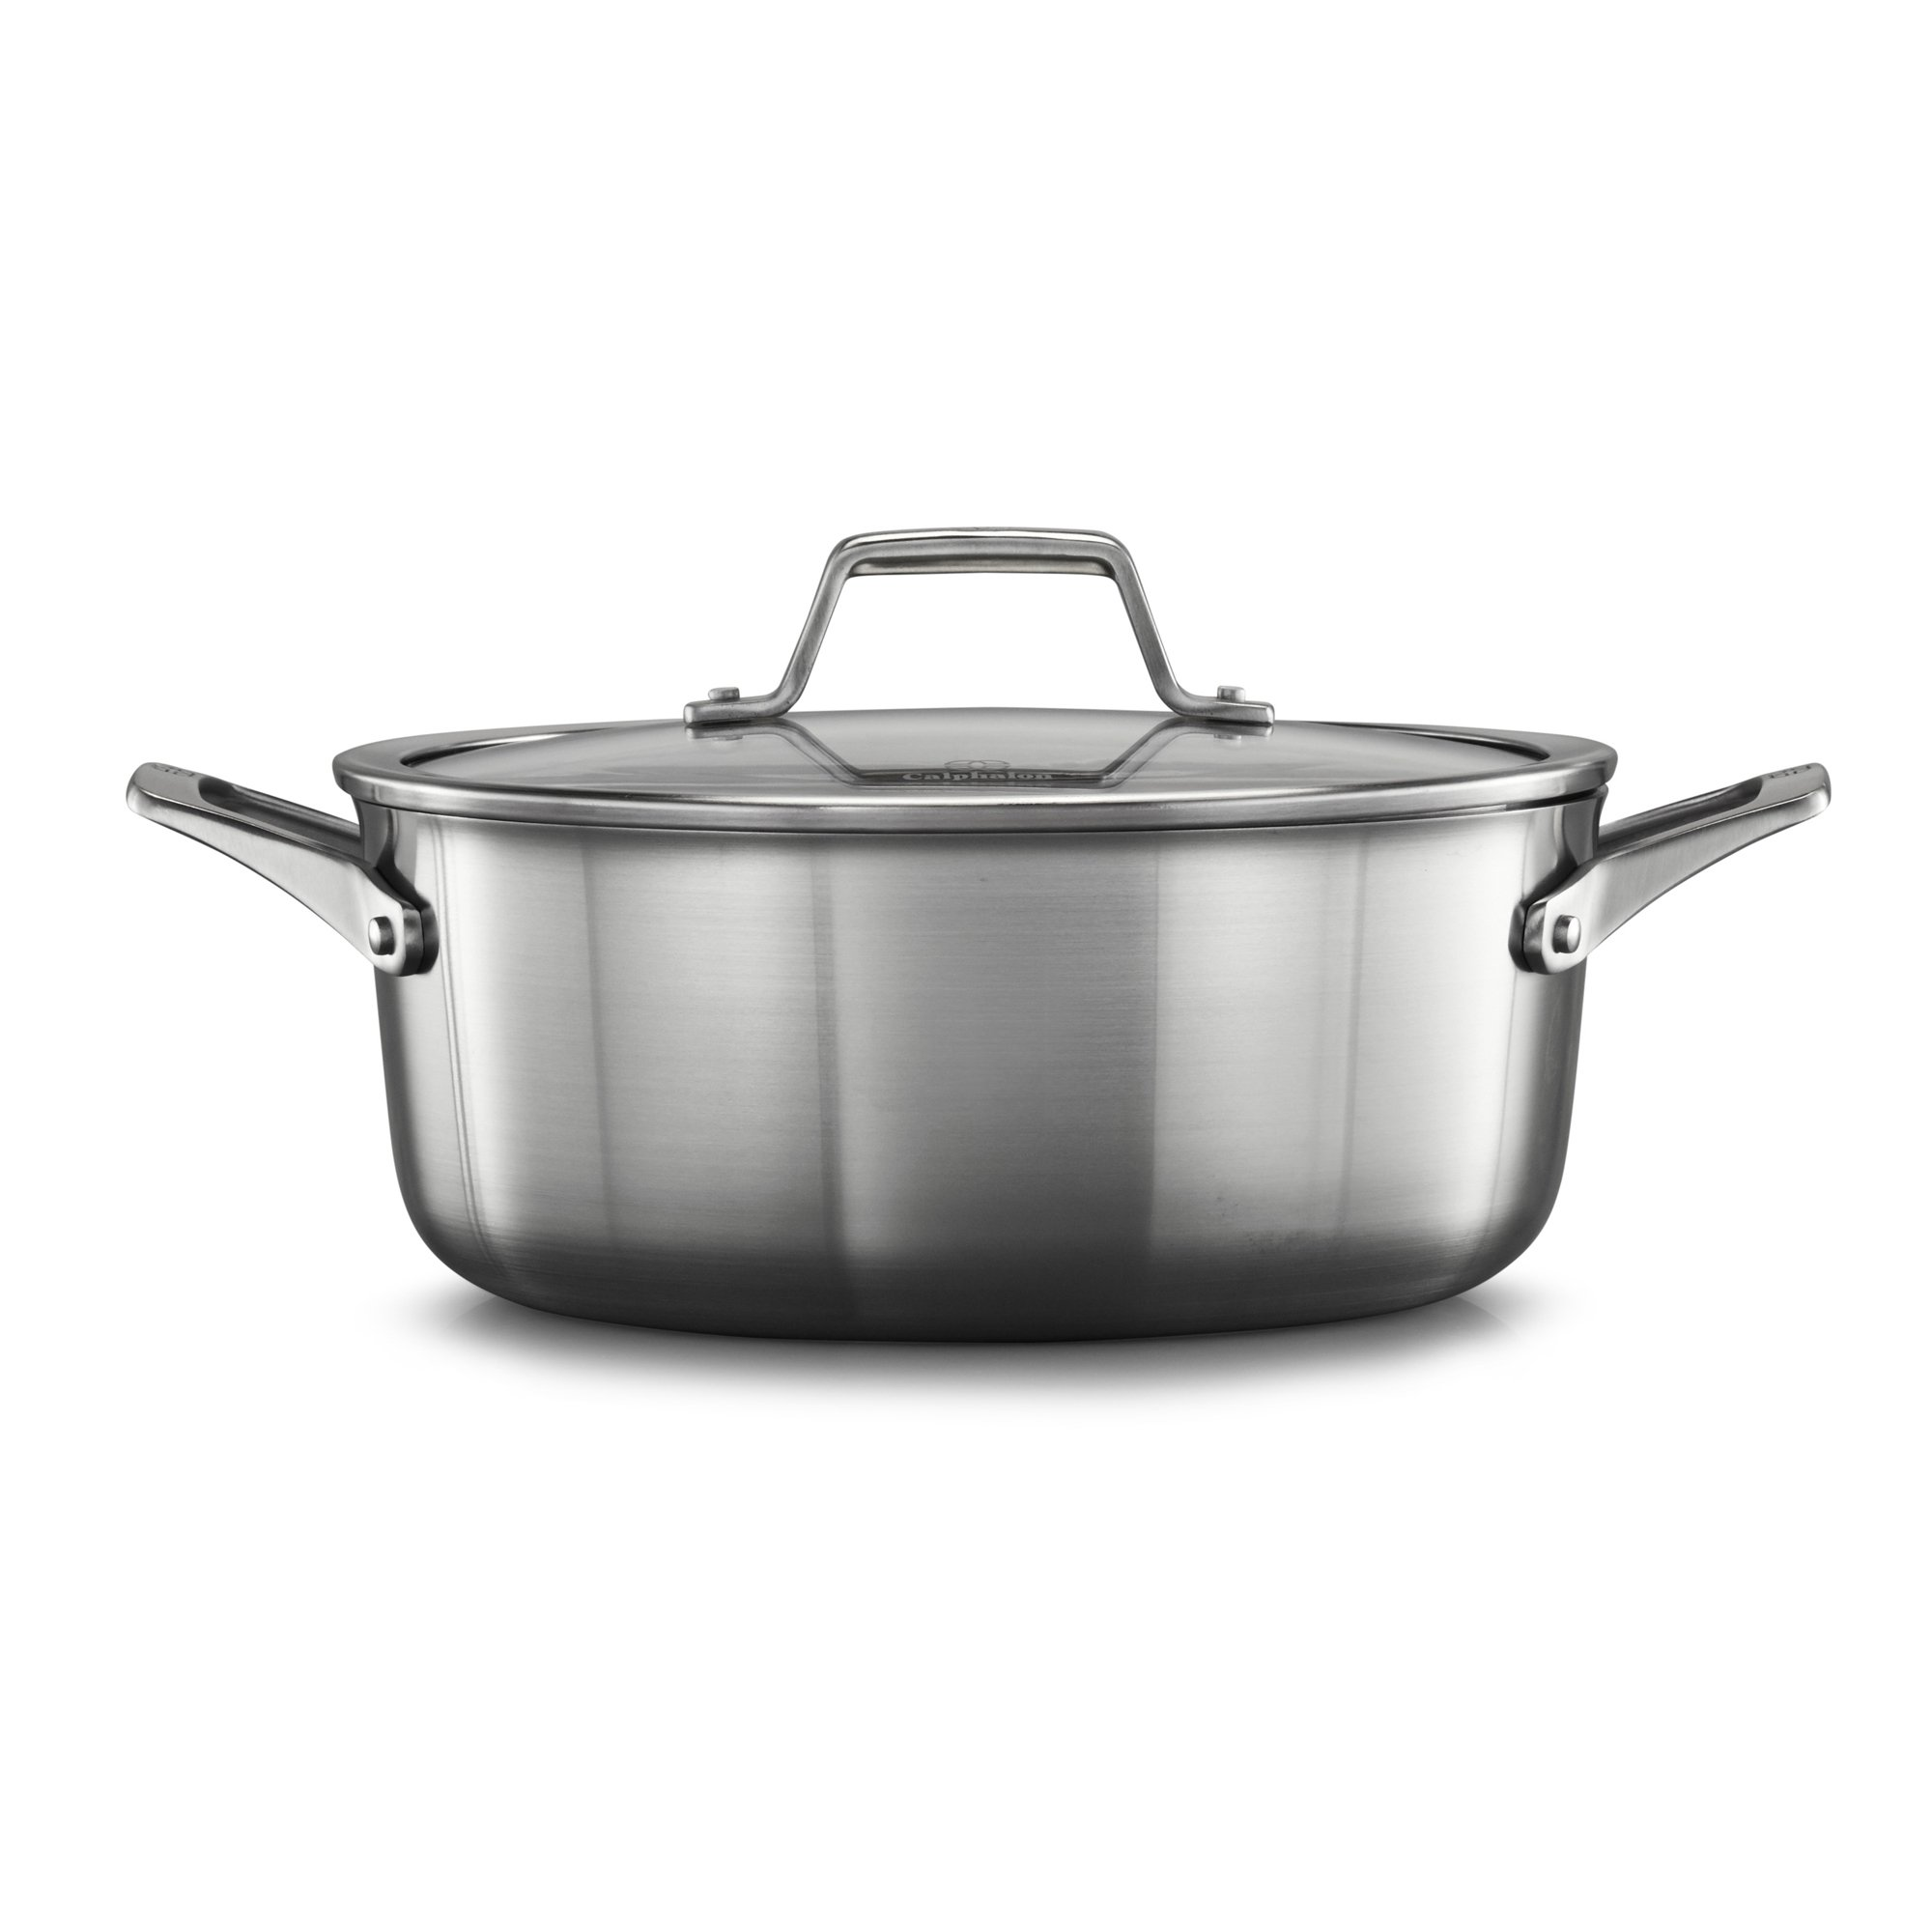 Calphalon Premier Stainless Steel 5-Quart Dutch Oven with Cover